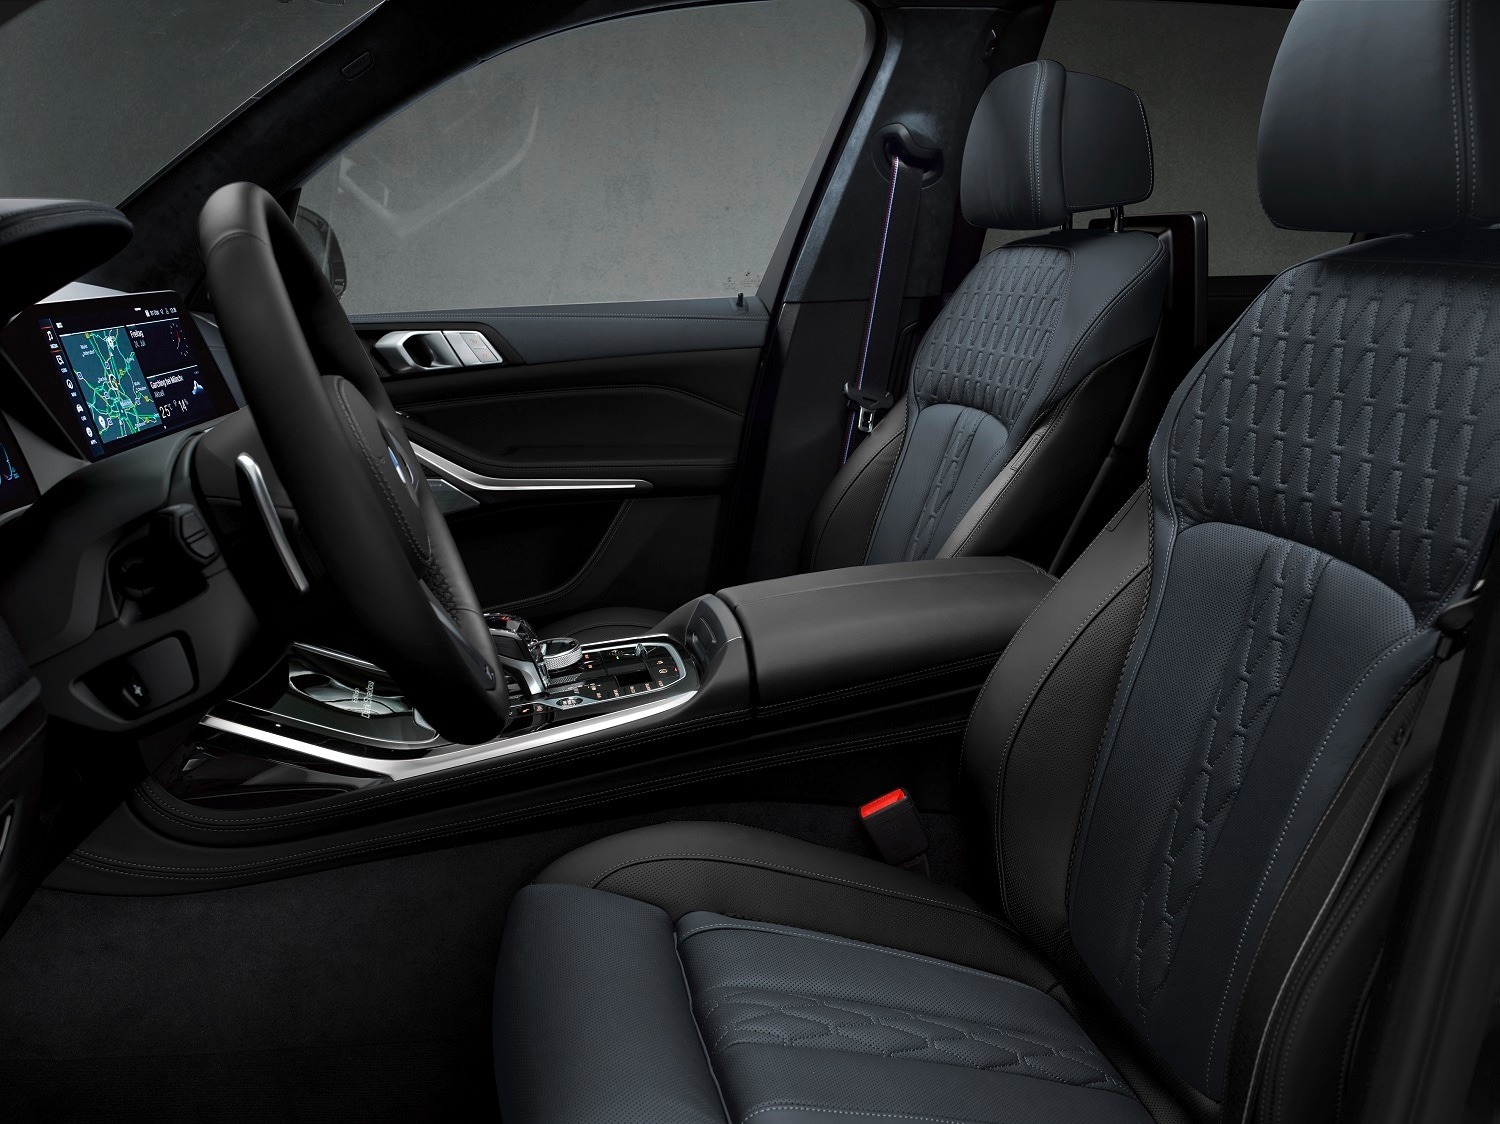 MW Individual Merino Full Leather upholstery comes in 'night blue/black' two-tone with contrasting seams, as does the BMW Individual roof liner in night blue with Alcantara finish. The upper part of instrument panel and door armrests are covered with Nappa leather in night blue. Black Merino Leather is used in the lower section of the instrument panel and on the front backrests.